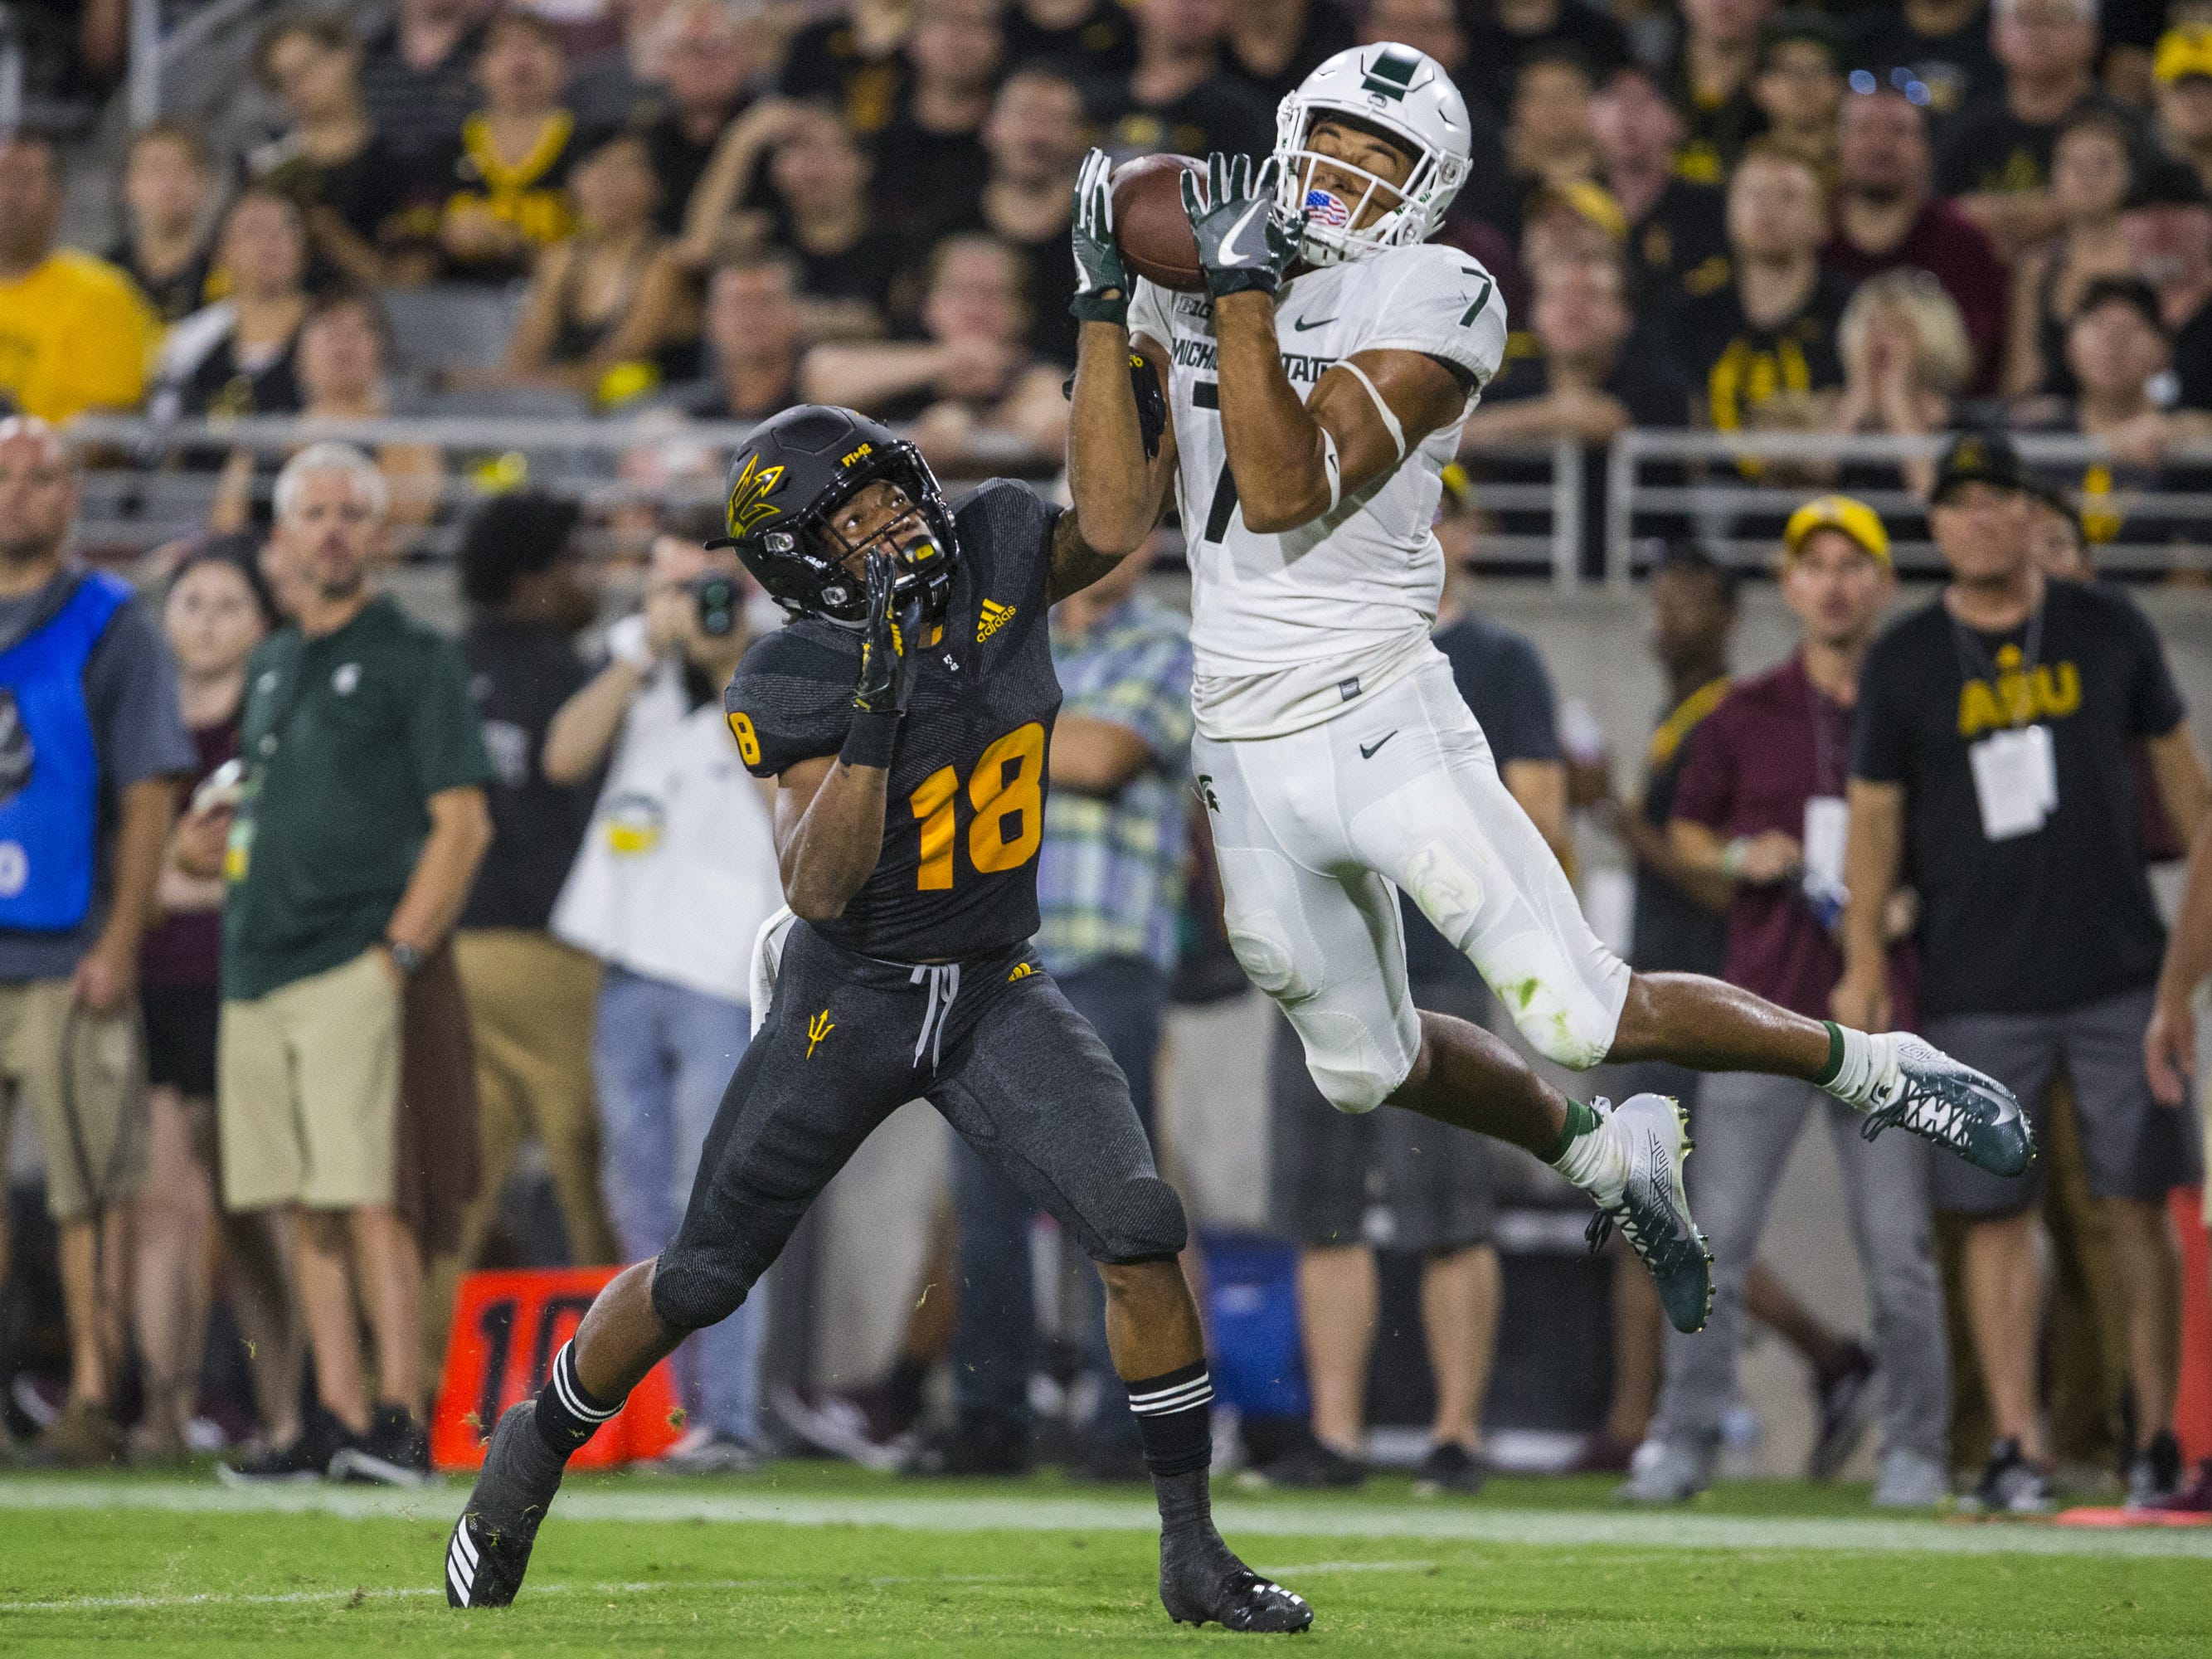 Michigan State's Cody White goes over Arizona State's Langston Frederick for a touchdown reception in the 3rd quarter on Saturday, Sept. 8, 2018, at Sun Devil Stadium in Tempe, Ariz.